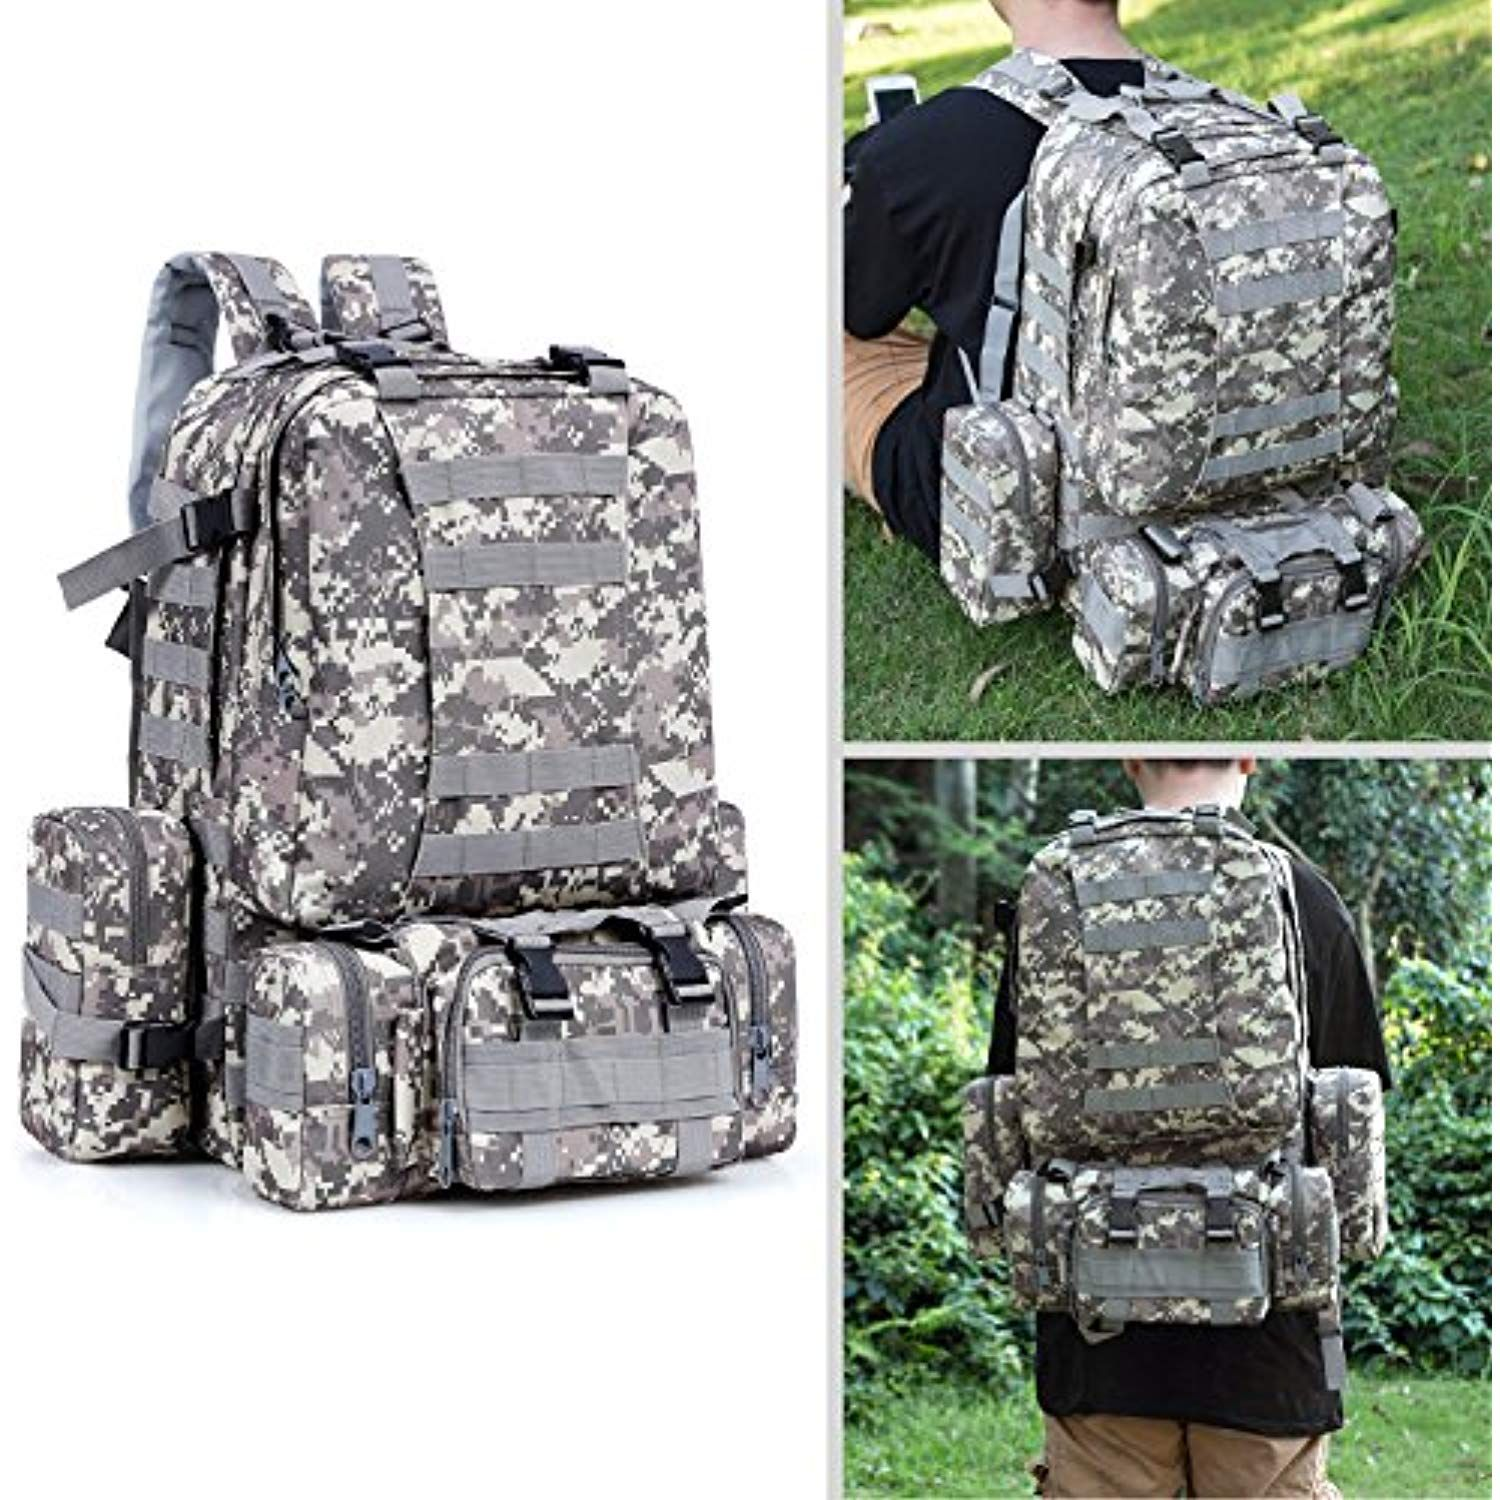 Outdoor Militarytactic Bag Nylon Waterproof Waist Bag Camouflage Sports Bags For Camping Hiking Molle Tactic Shoulder Bag Sports & Entertainment Picnic Bags